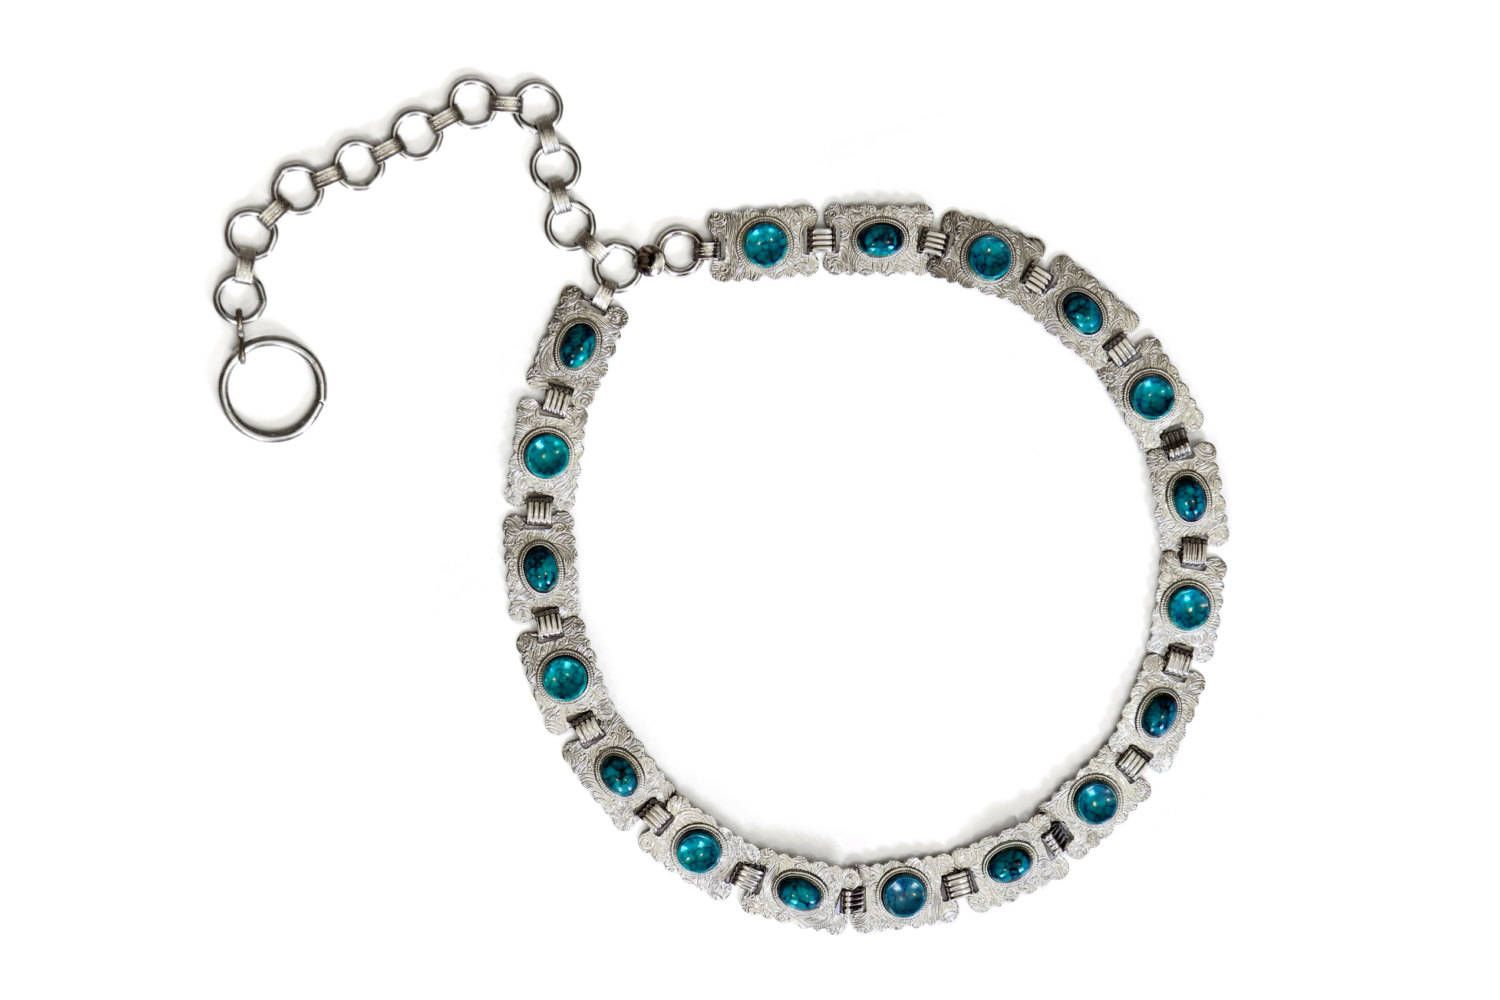 89bcb36d Concho Belt, Faux Turquoise, Silver Tone Metal, Adjustable Chain ...